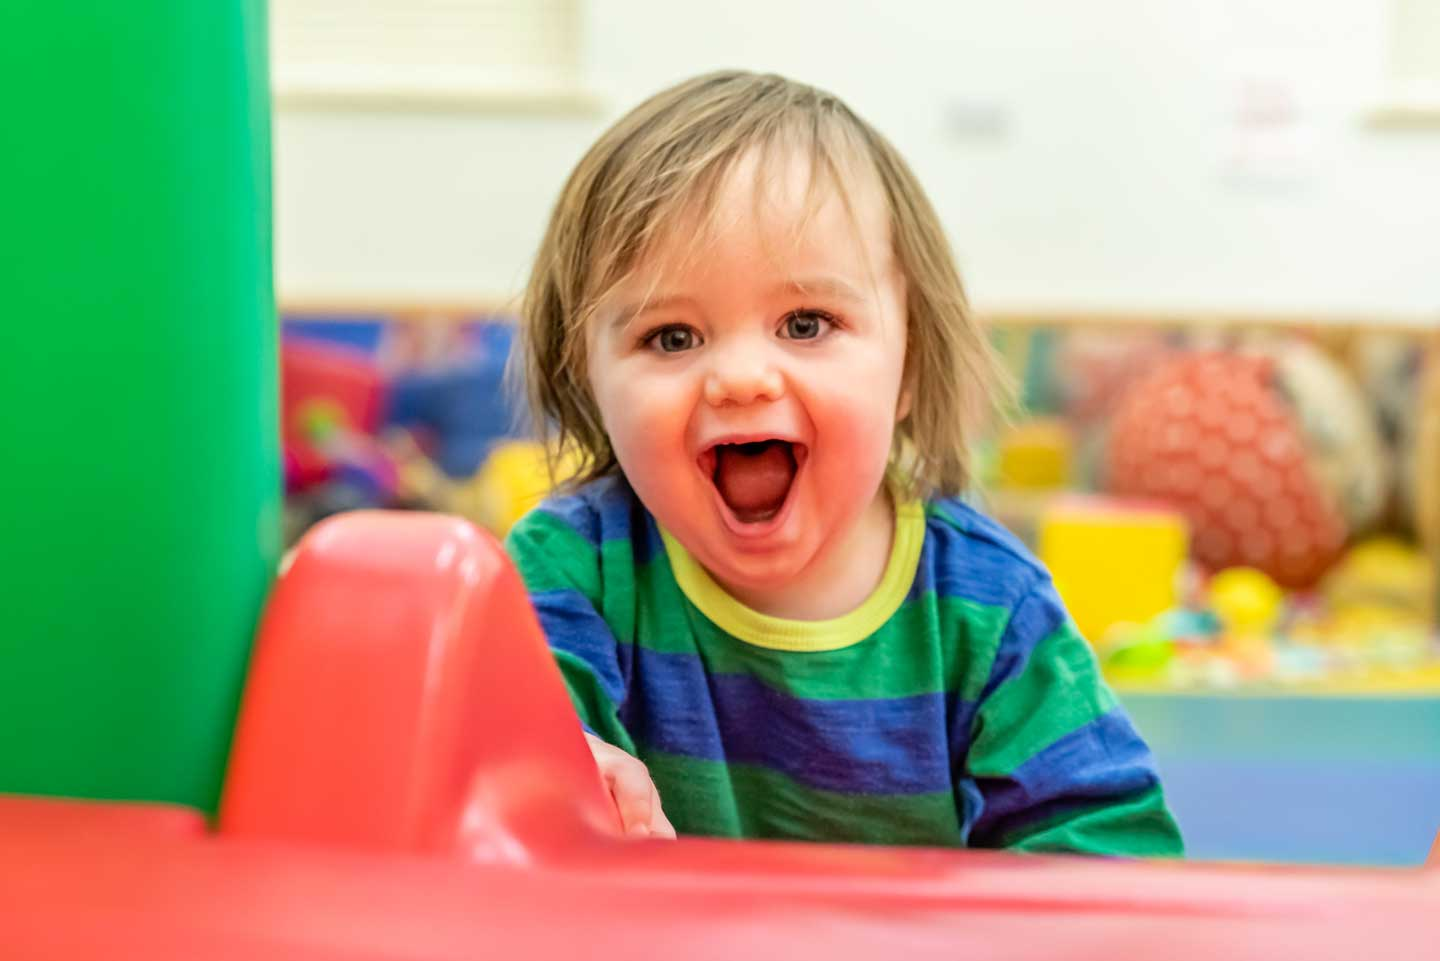 Open mouthed lttle boy exploring and learning in soft play area